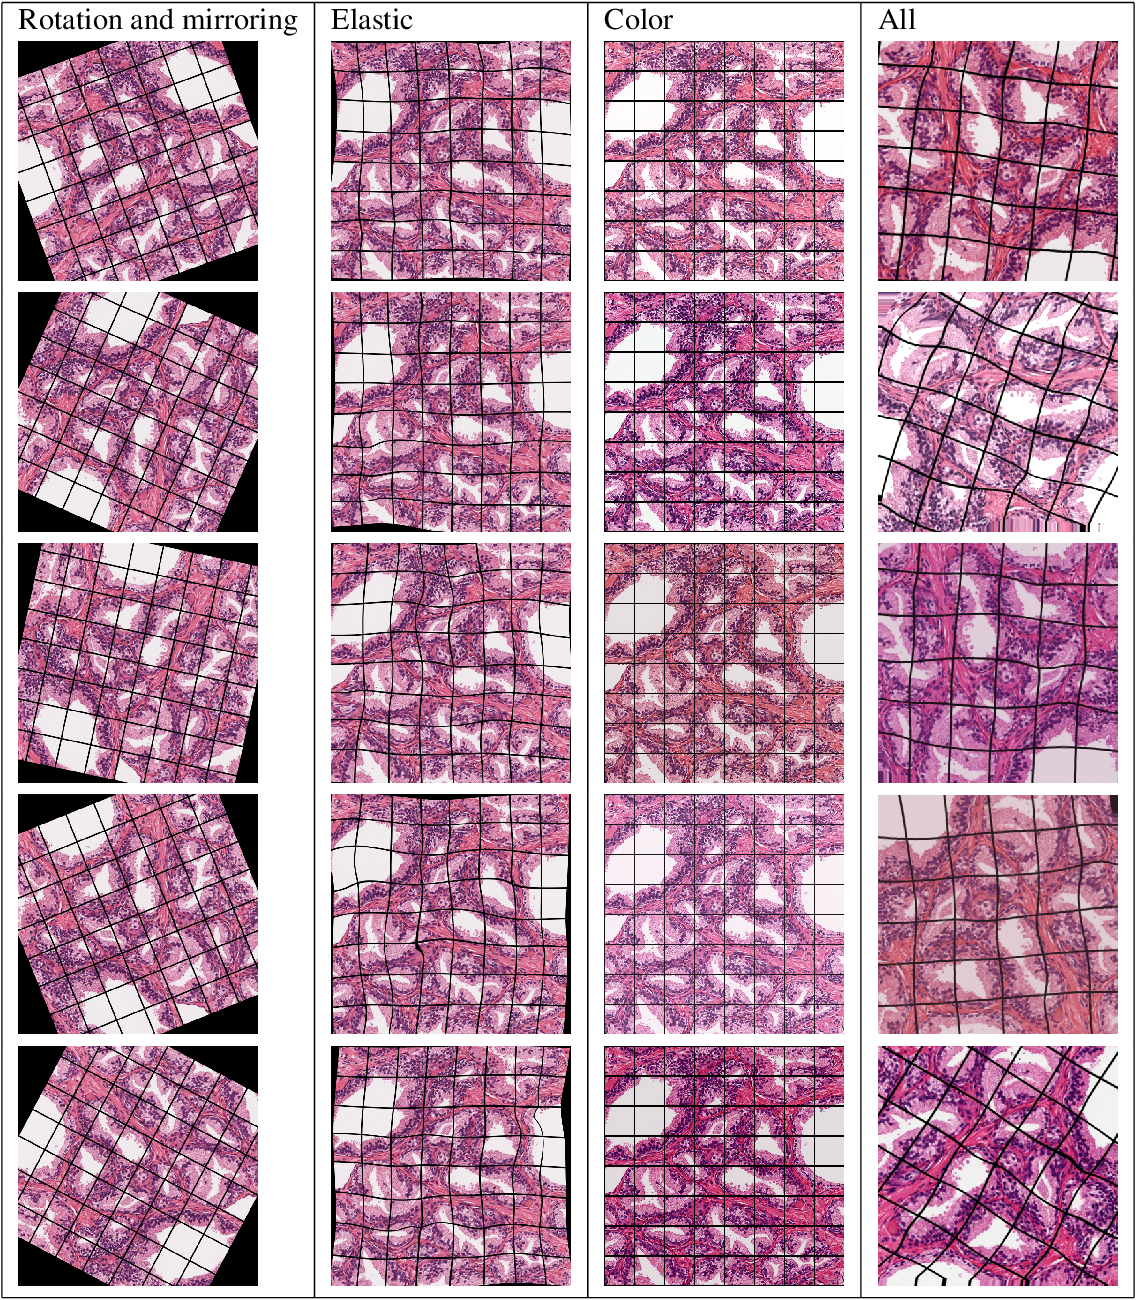 Figure 4 for Segmenting Potentially Cancerous Areas in Prostate Biopsies using Semi-Automatically Annotated Data